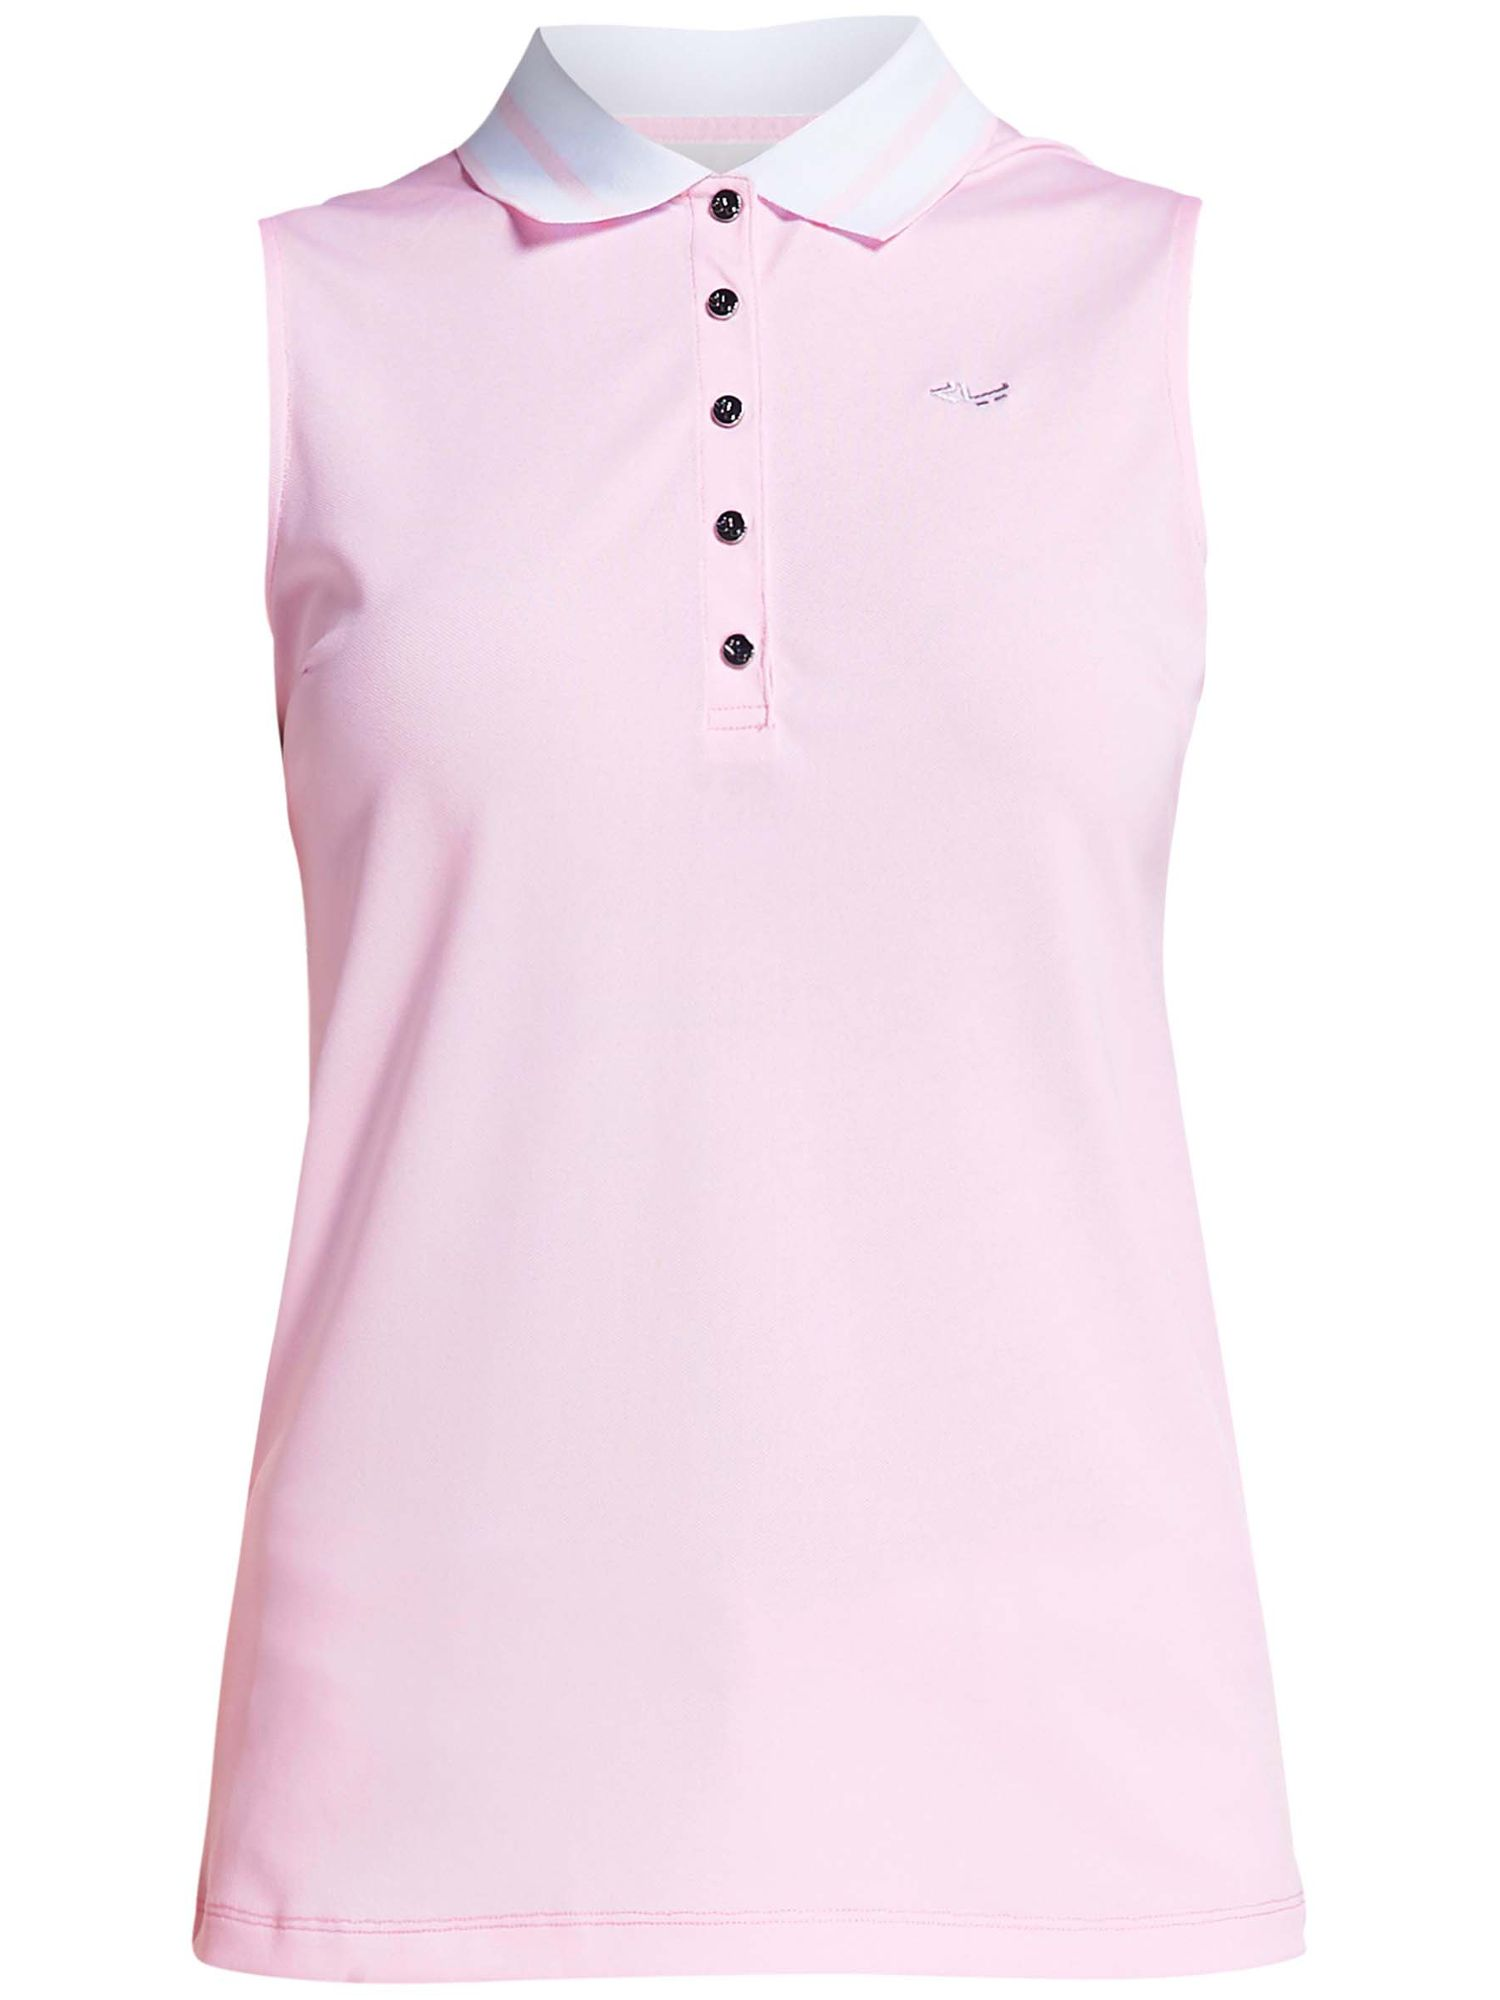 Rohnisch Pim Sleeveless Polo, 161 Cherry Blossom